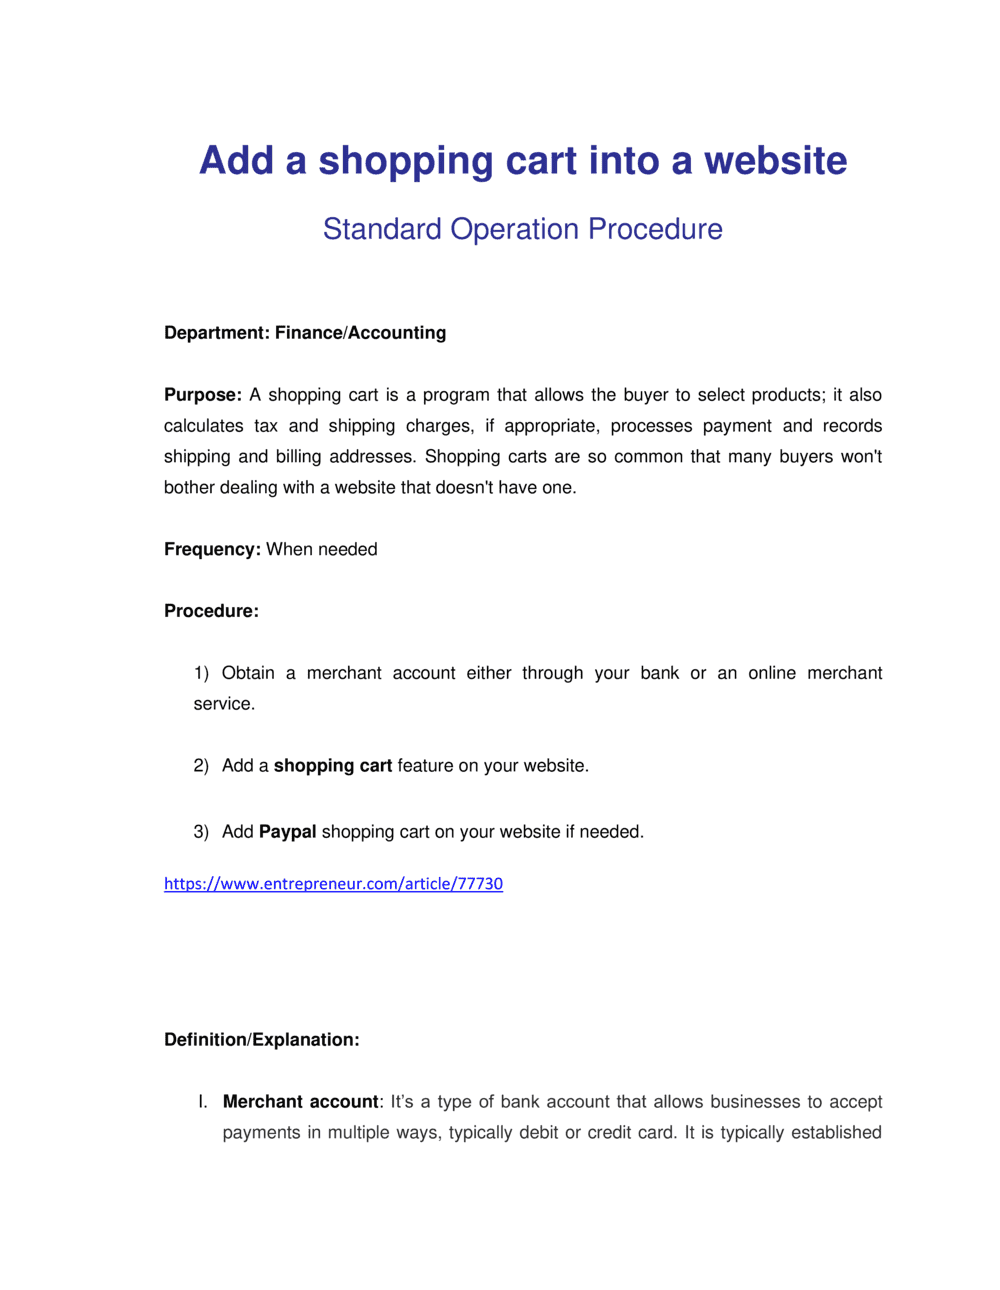 Business-in-a-Box's How to Setup a Shopping Cart